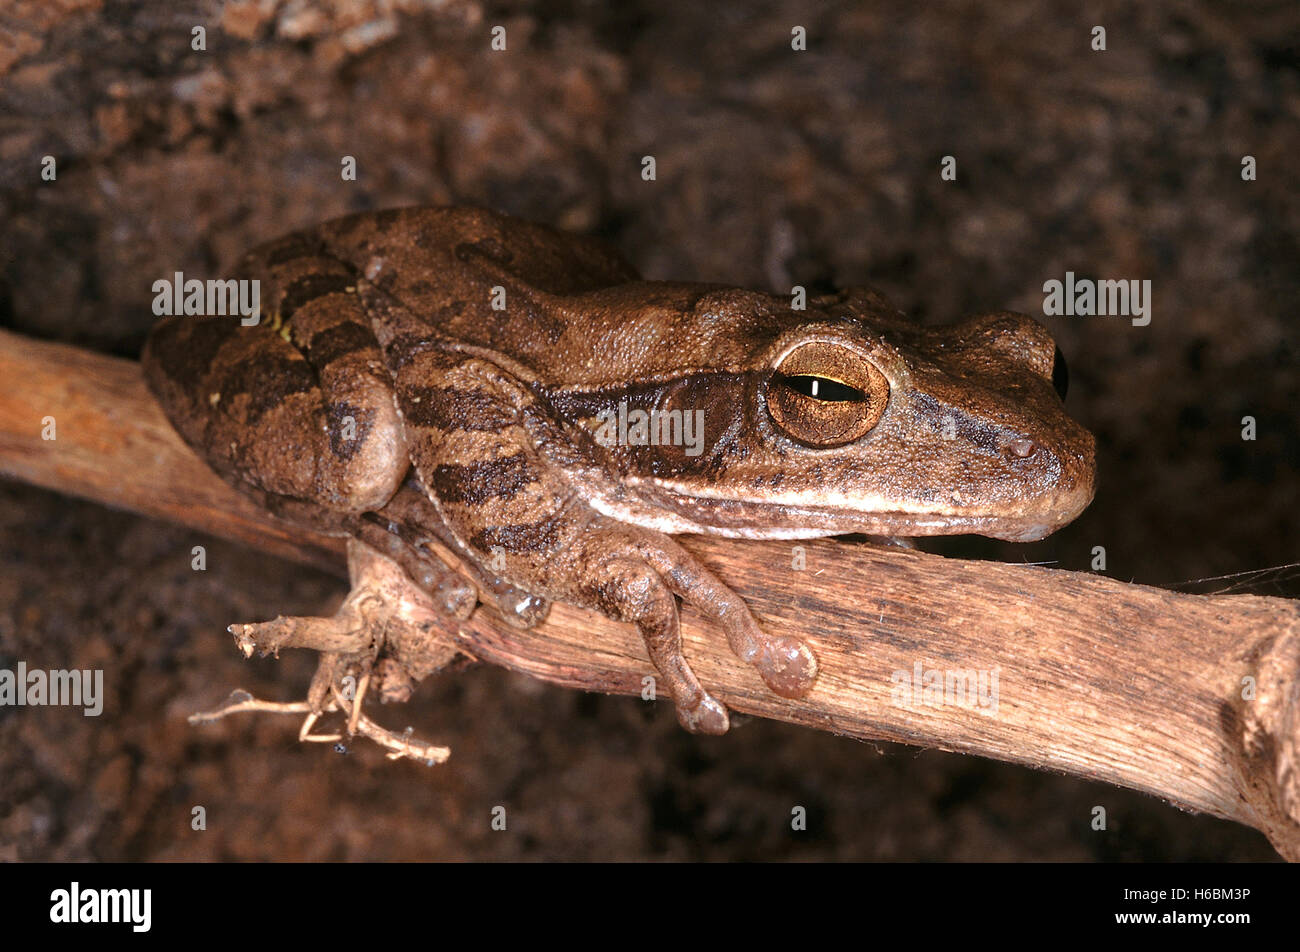 Polypedates Maculatus. Common tree frog. A medium sized frog that is found in moist deciduous forest areas. It lives - Stock Image